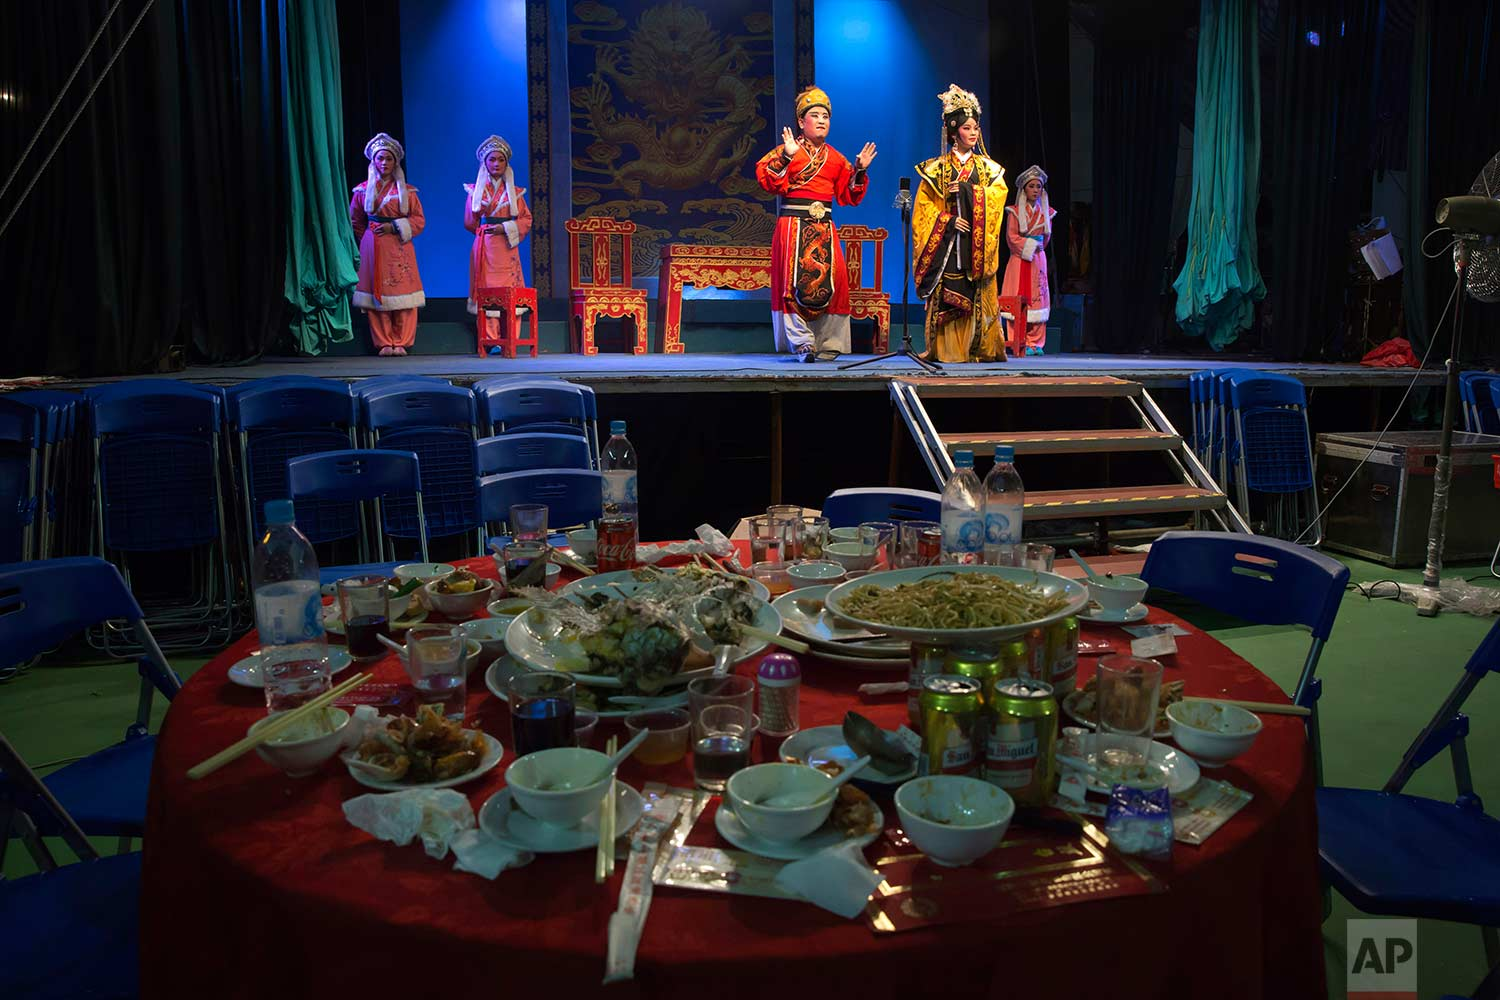 """In this Aug. 30, 2017, photo, Chinese opera artists perform at a makeshift theater during the """"Hungry Ghost Festival"""" in Hong Kong. (AP Photo/Kin Cheung)"""